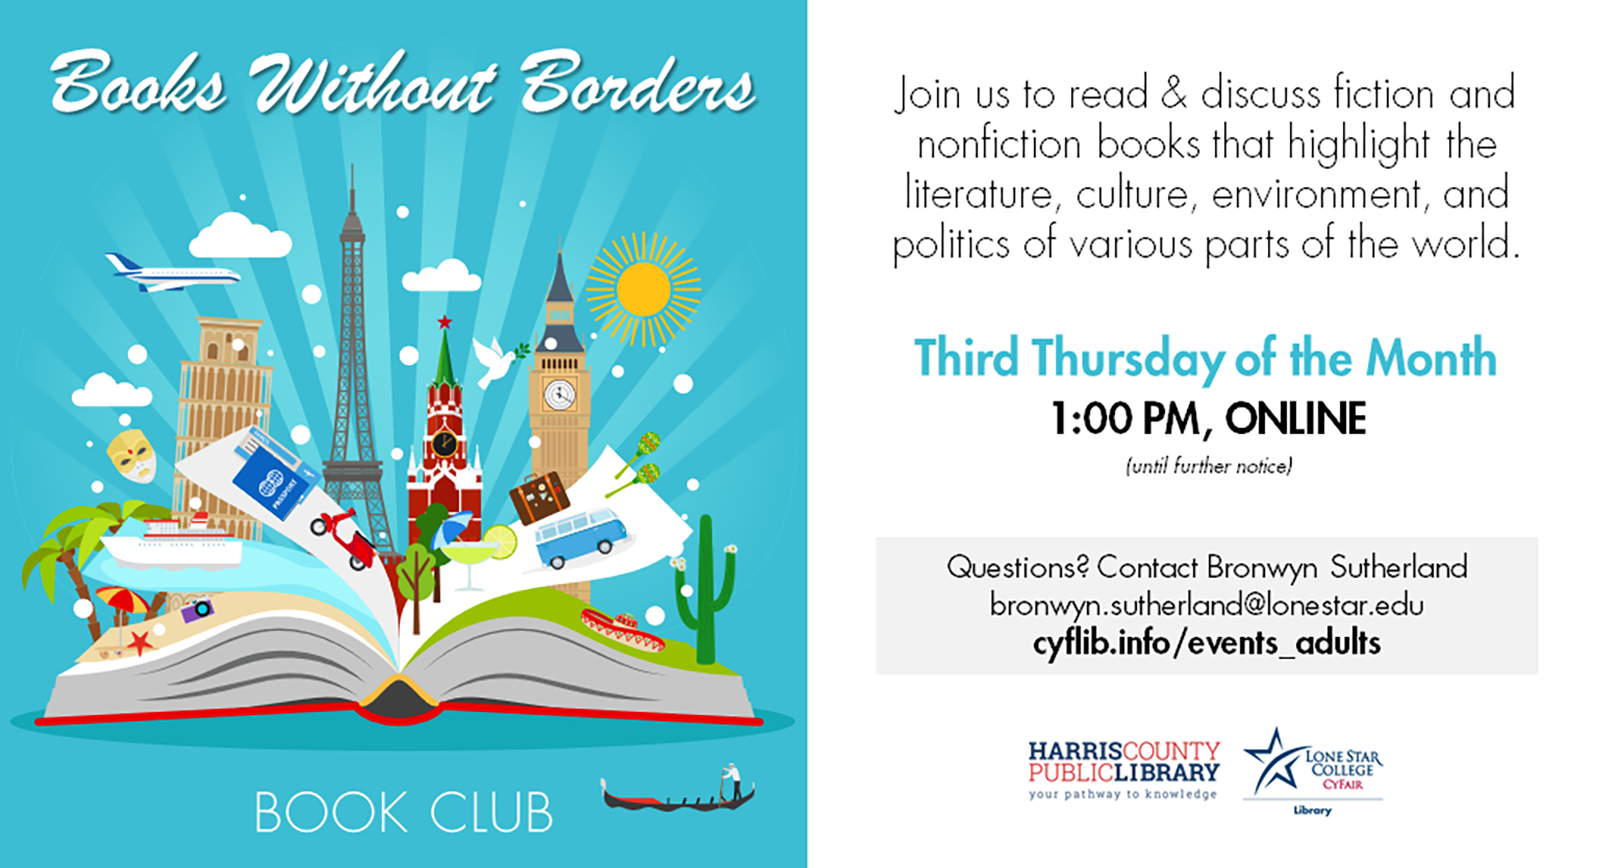 books without borders book club